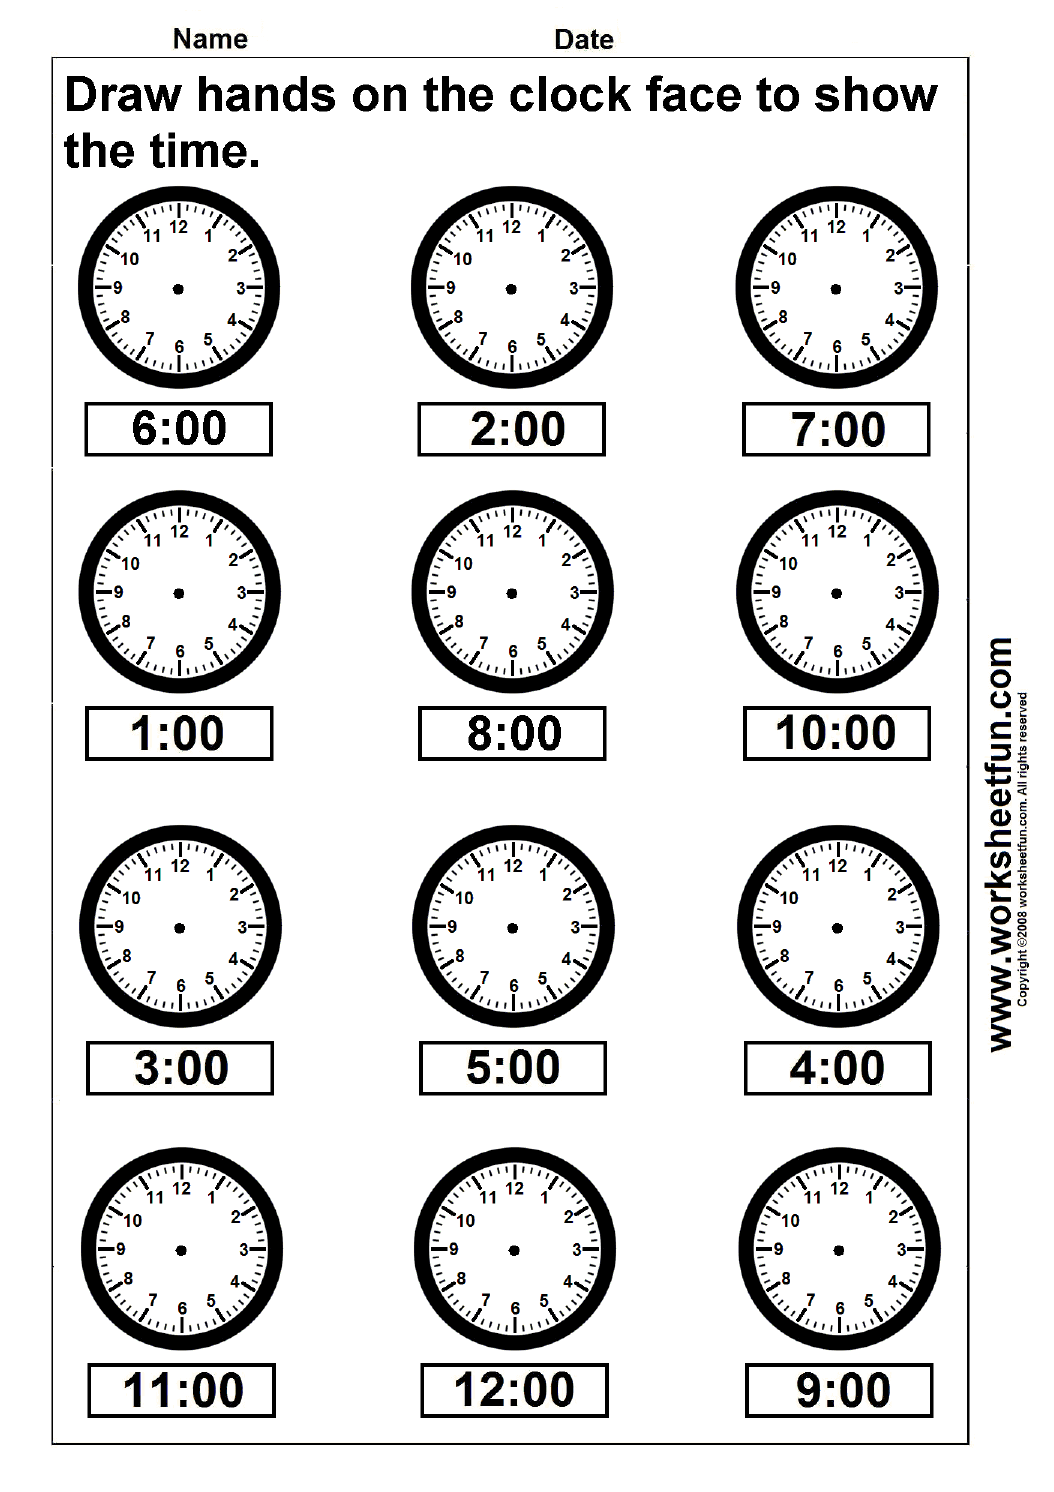 Draw Hands On The Clock Face To Show The Time